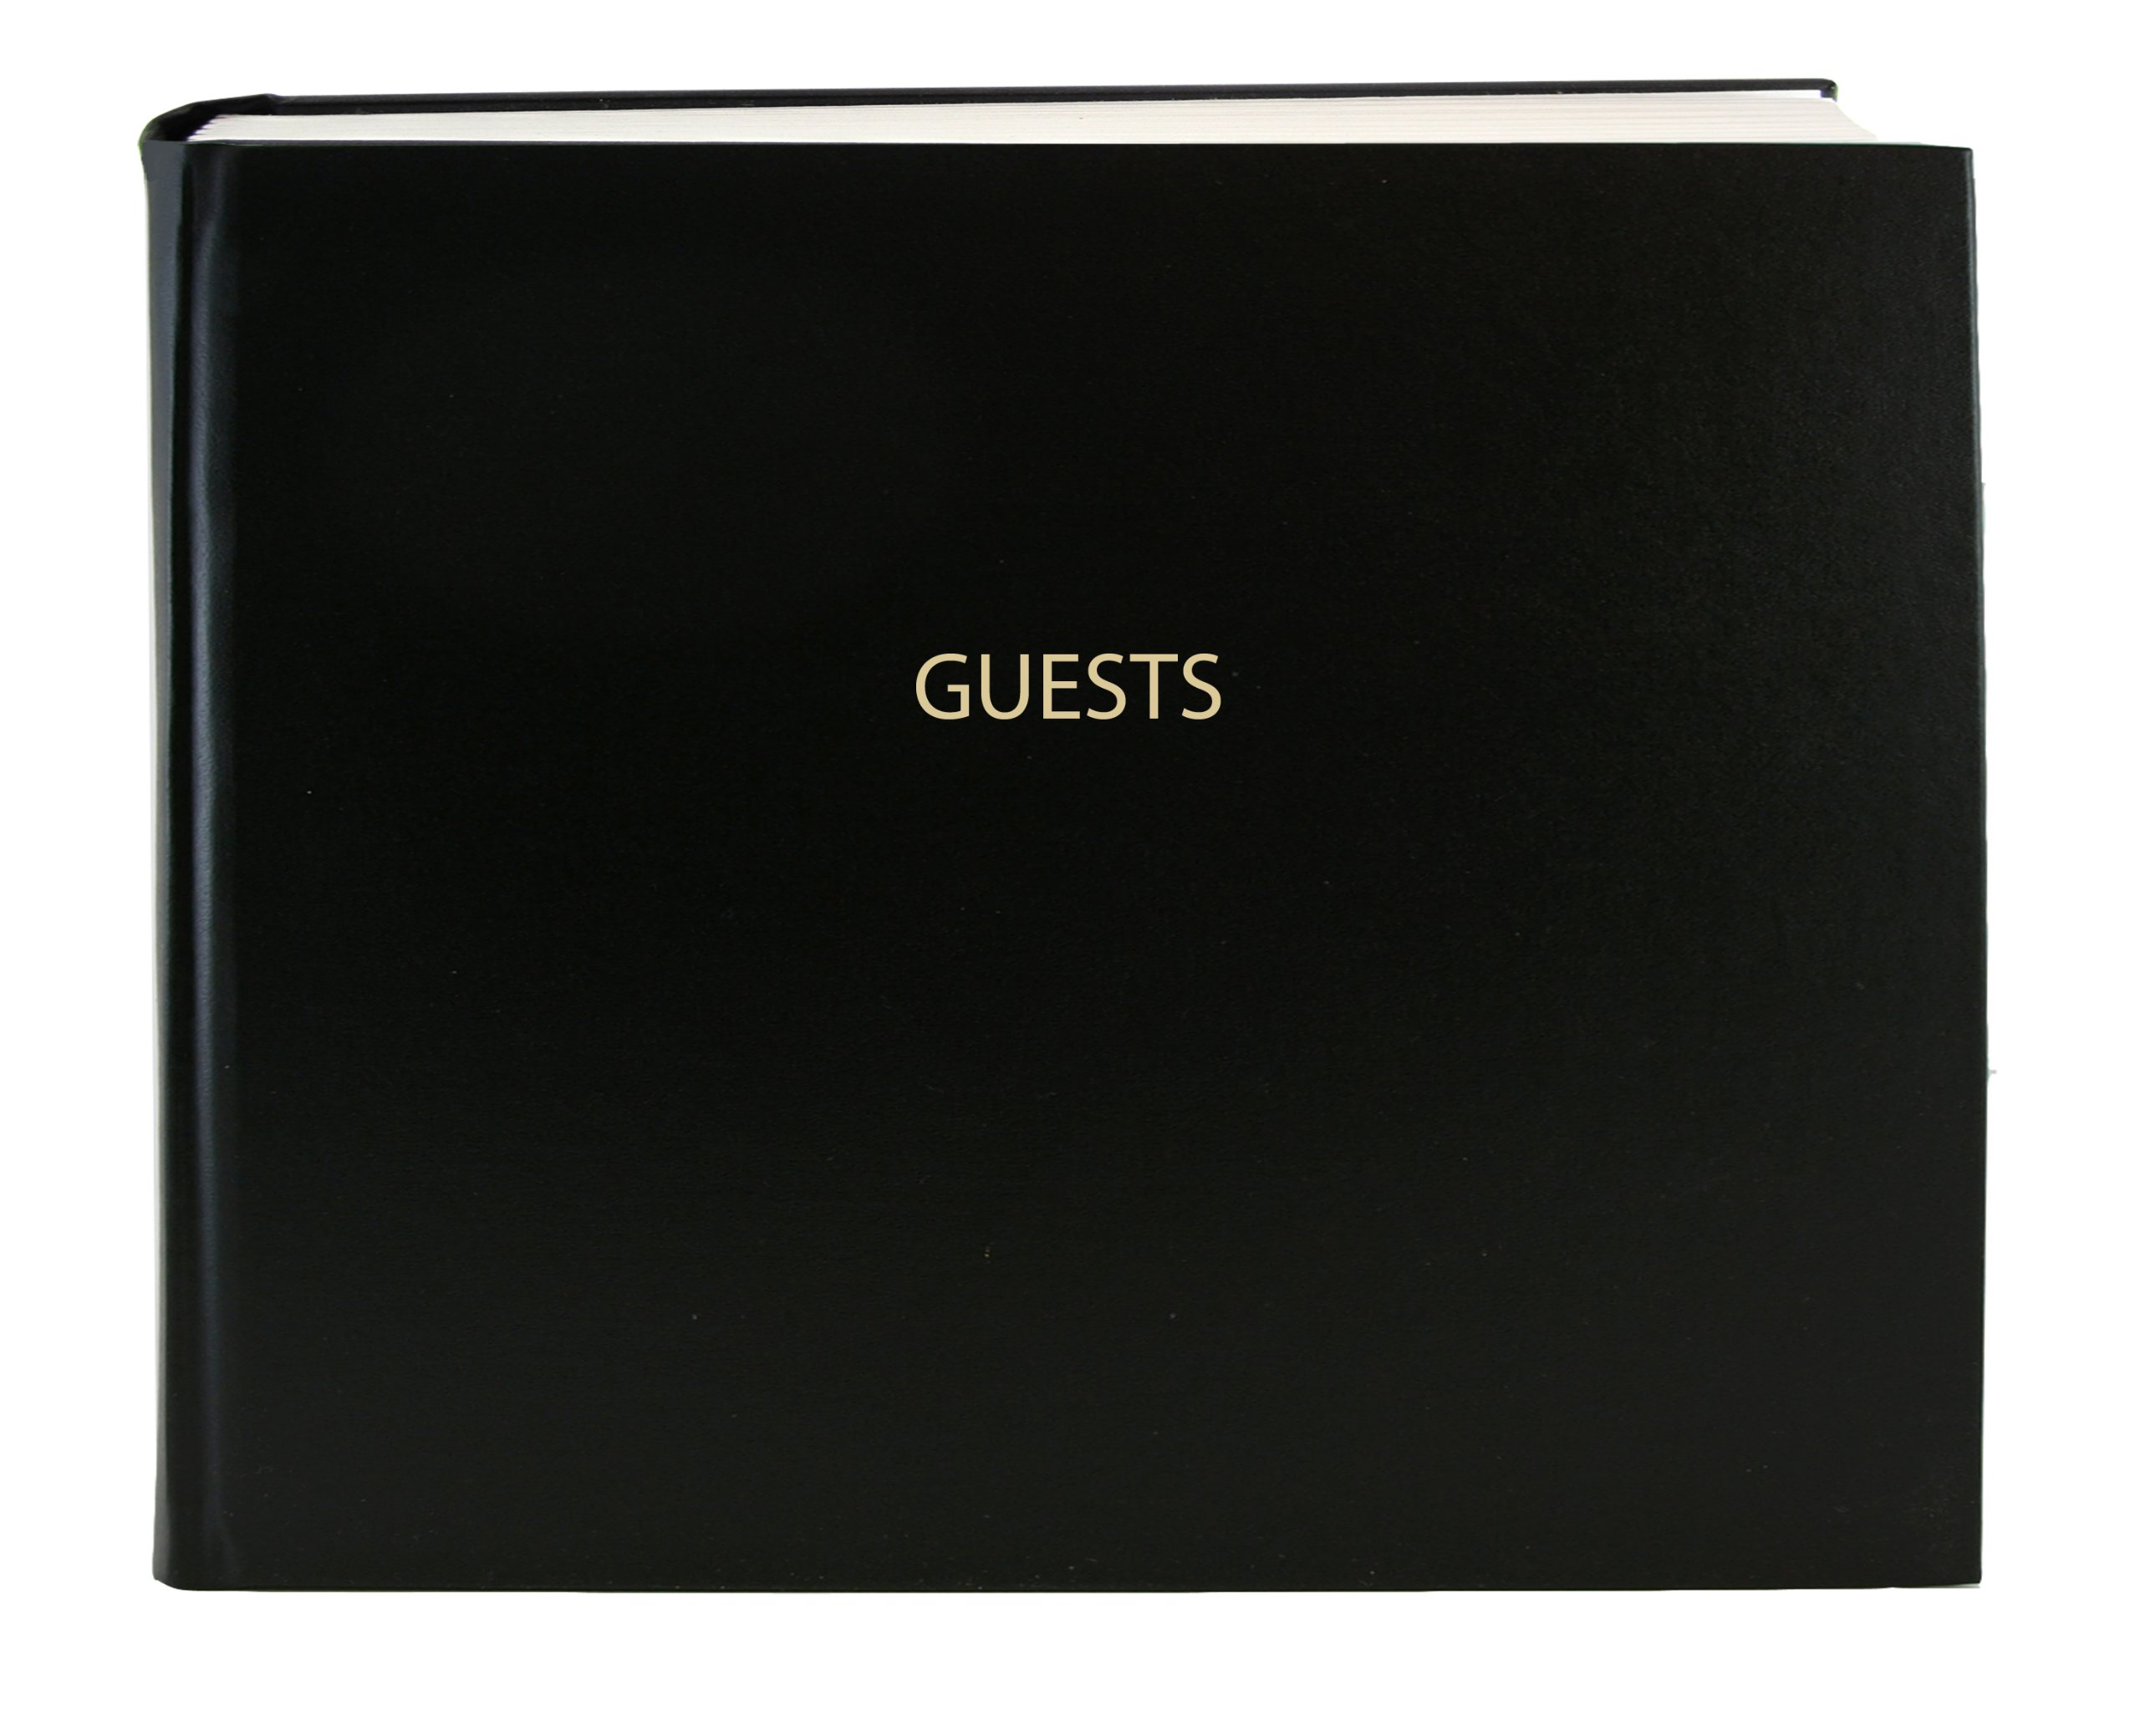 BookFactory Guest Book (120 pages) / Guest Sign-In Book / Guest Registry / Guestbook - Black Cover, Smyth Sewn Hardbound, 8 7/8'' x 7'' (LOG-120-GUEST-A-LKT25)